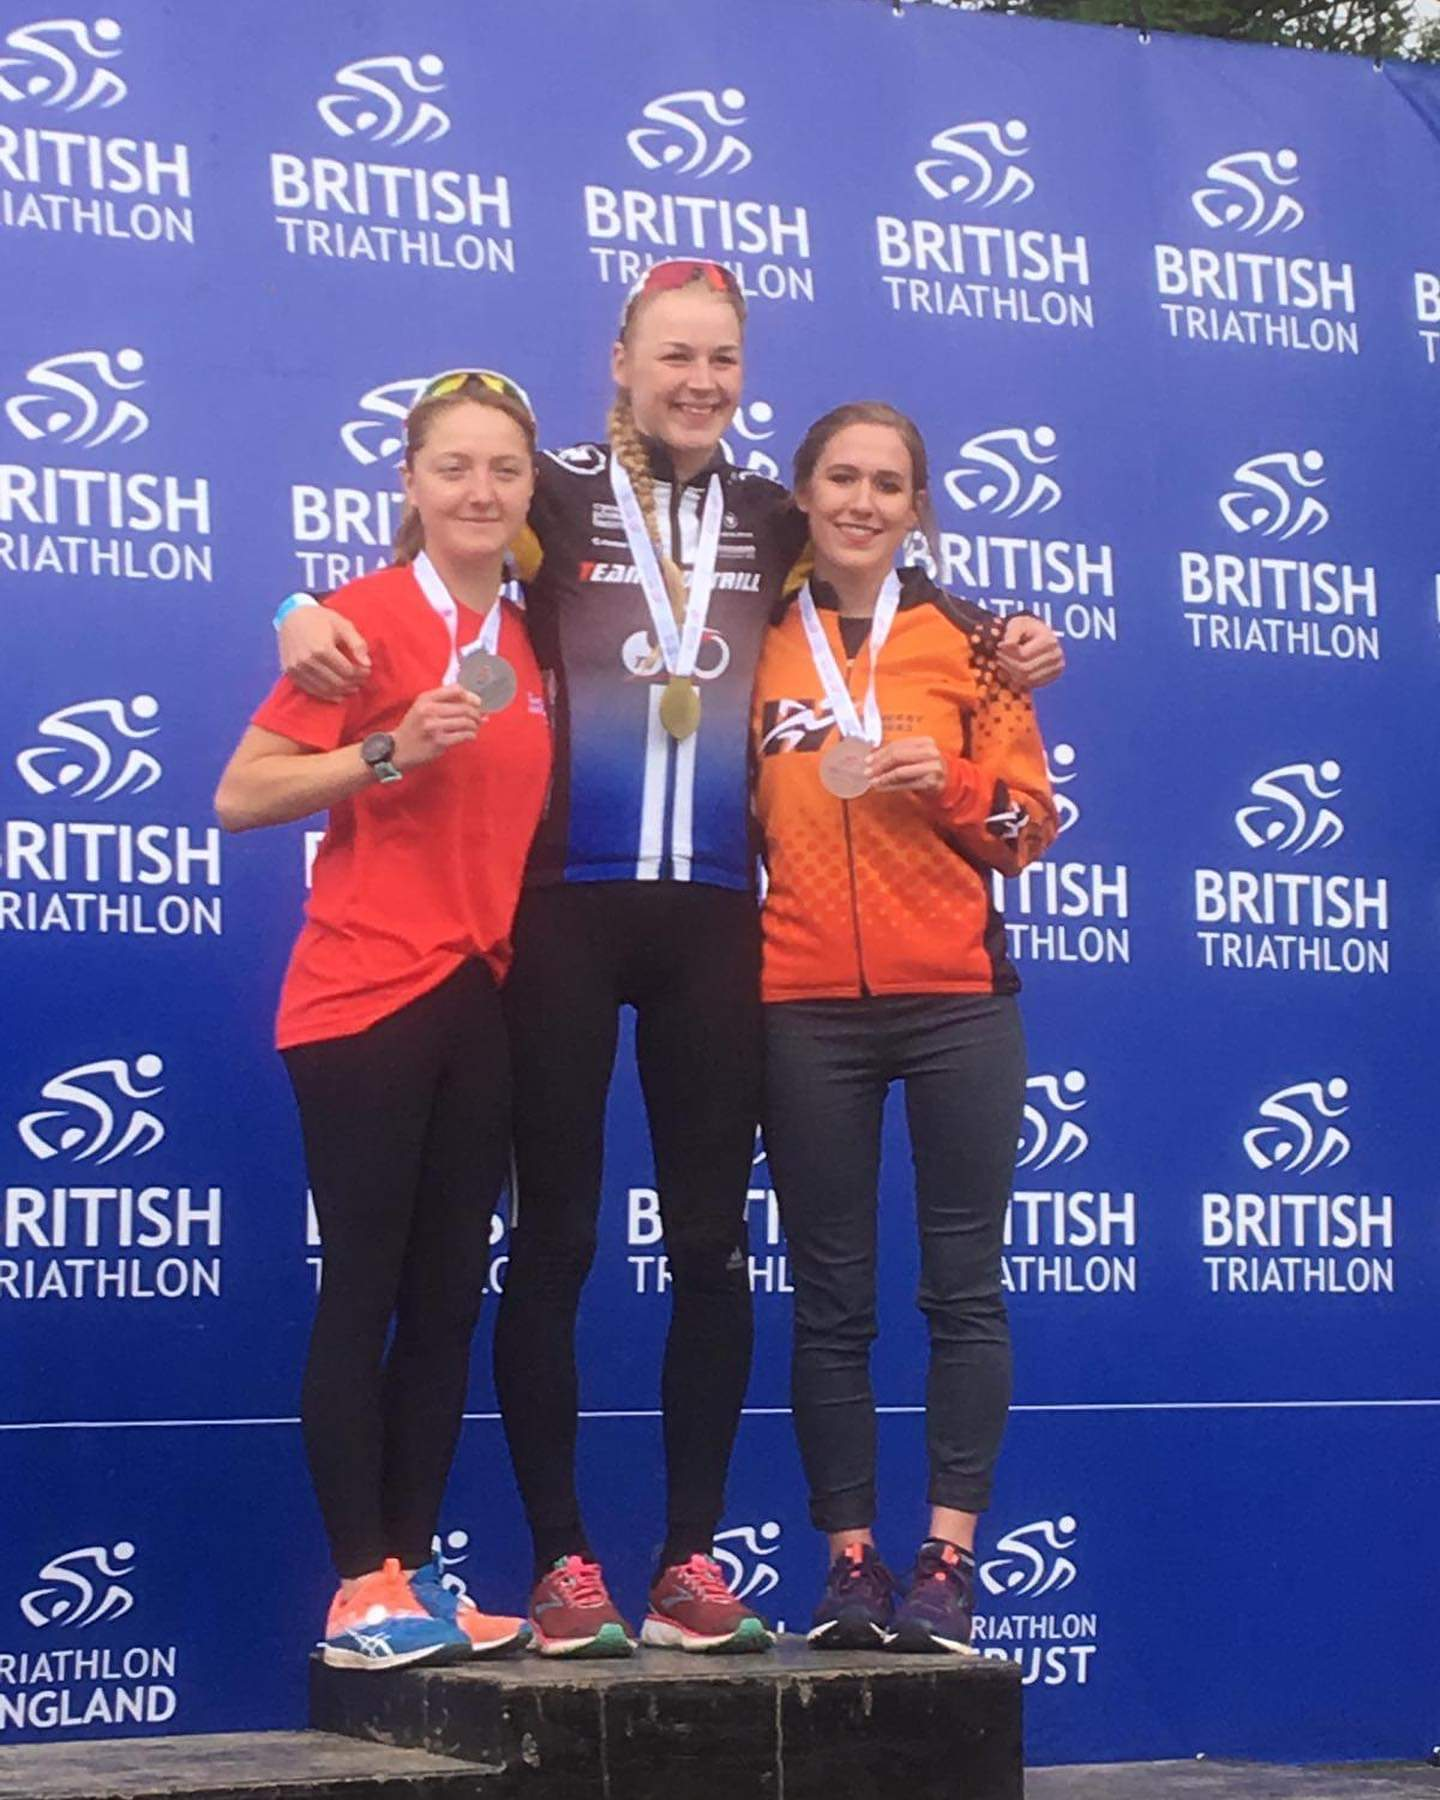 BCOM student becomes triathlon champion